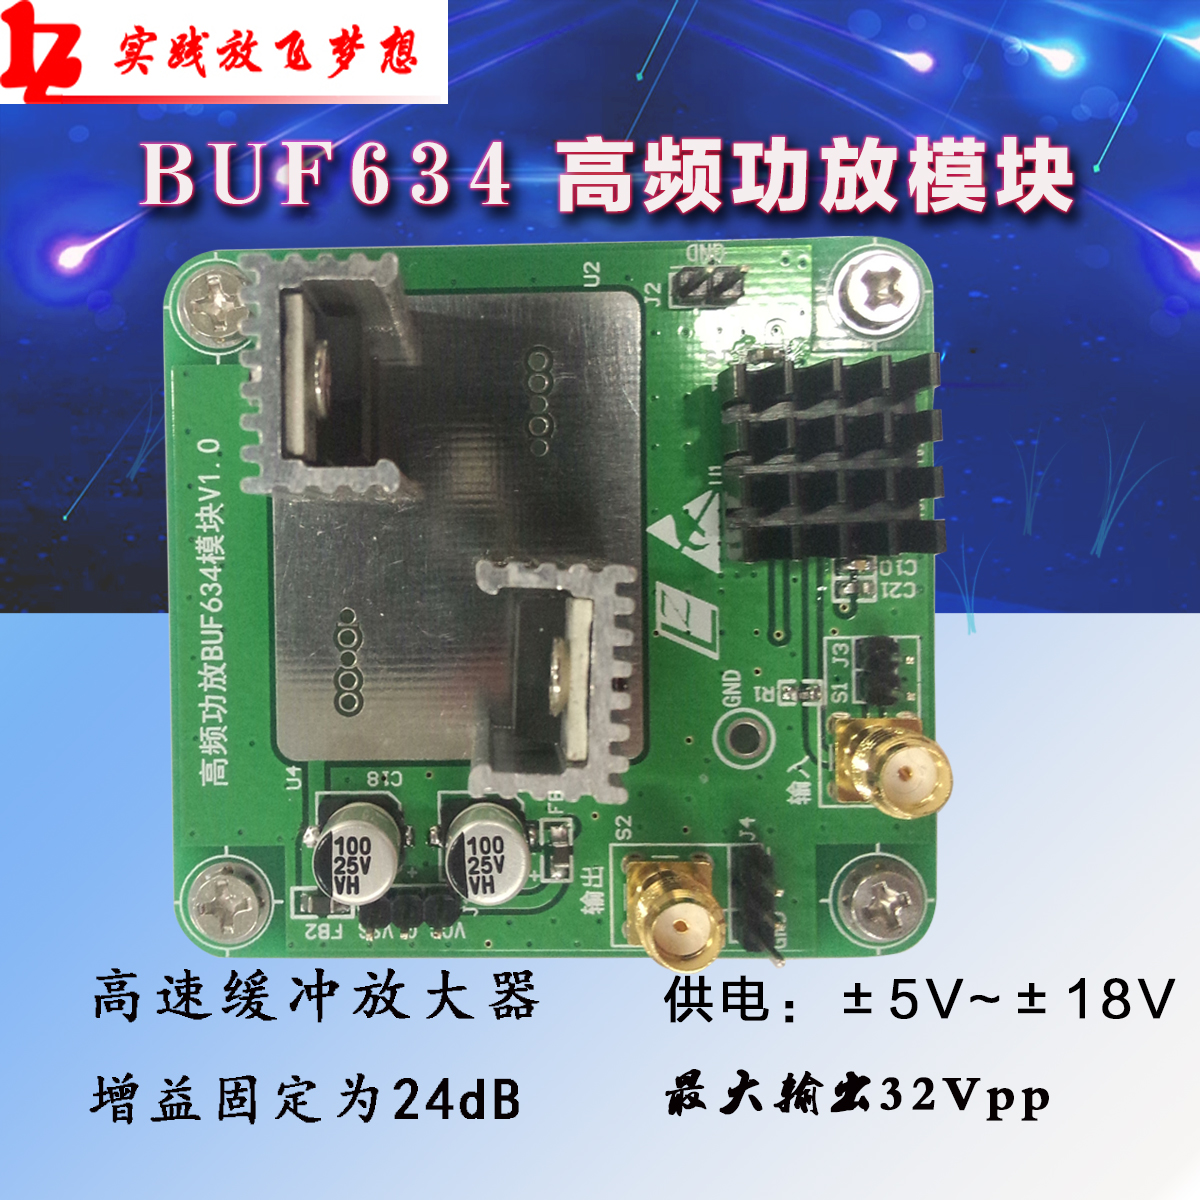 Module BUF634 High Frequency Power Amplifier 2.5W/32V Output 09 Broadband DC Amplifier ConditioningModule BUF634 High Frequency Power Amplifier 2.5W/32V Output 09 Broadband DC Amplifier Conditioning